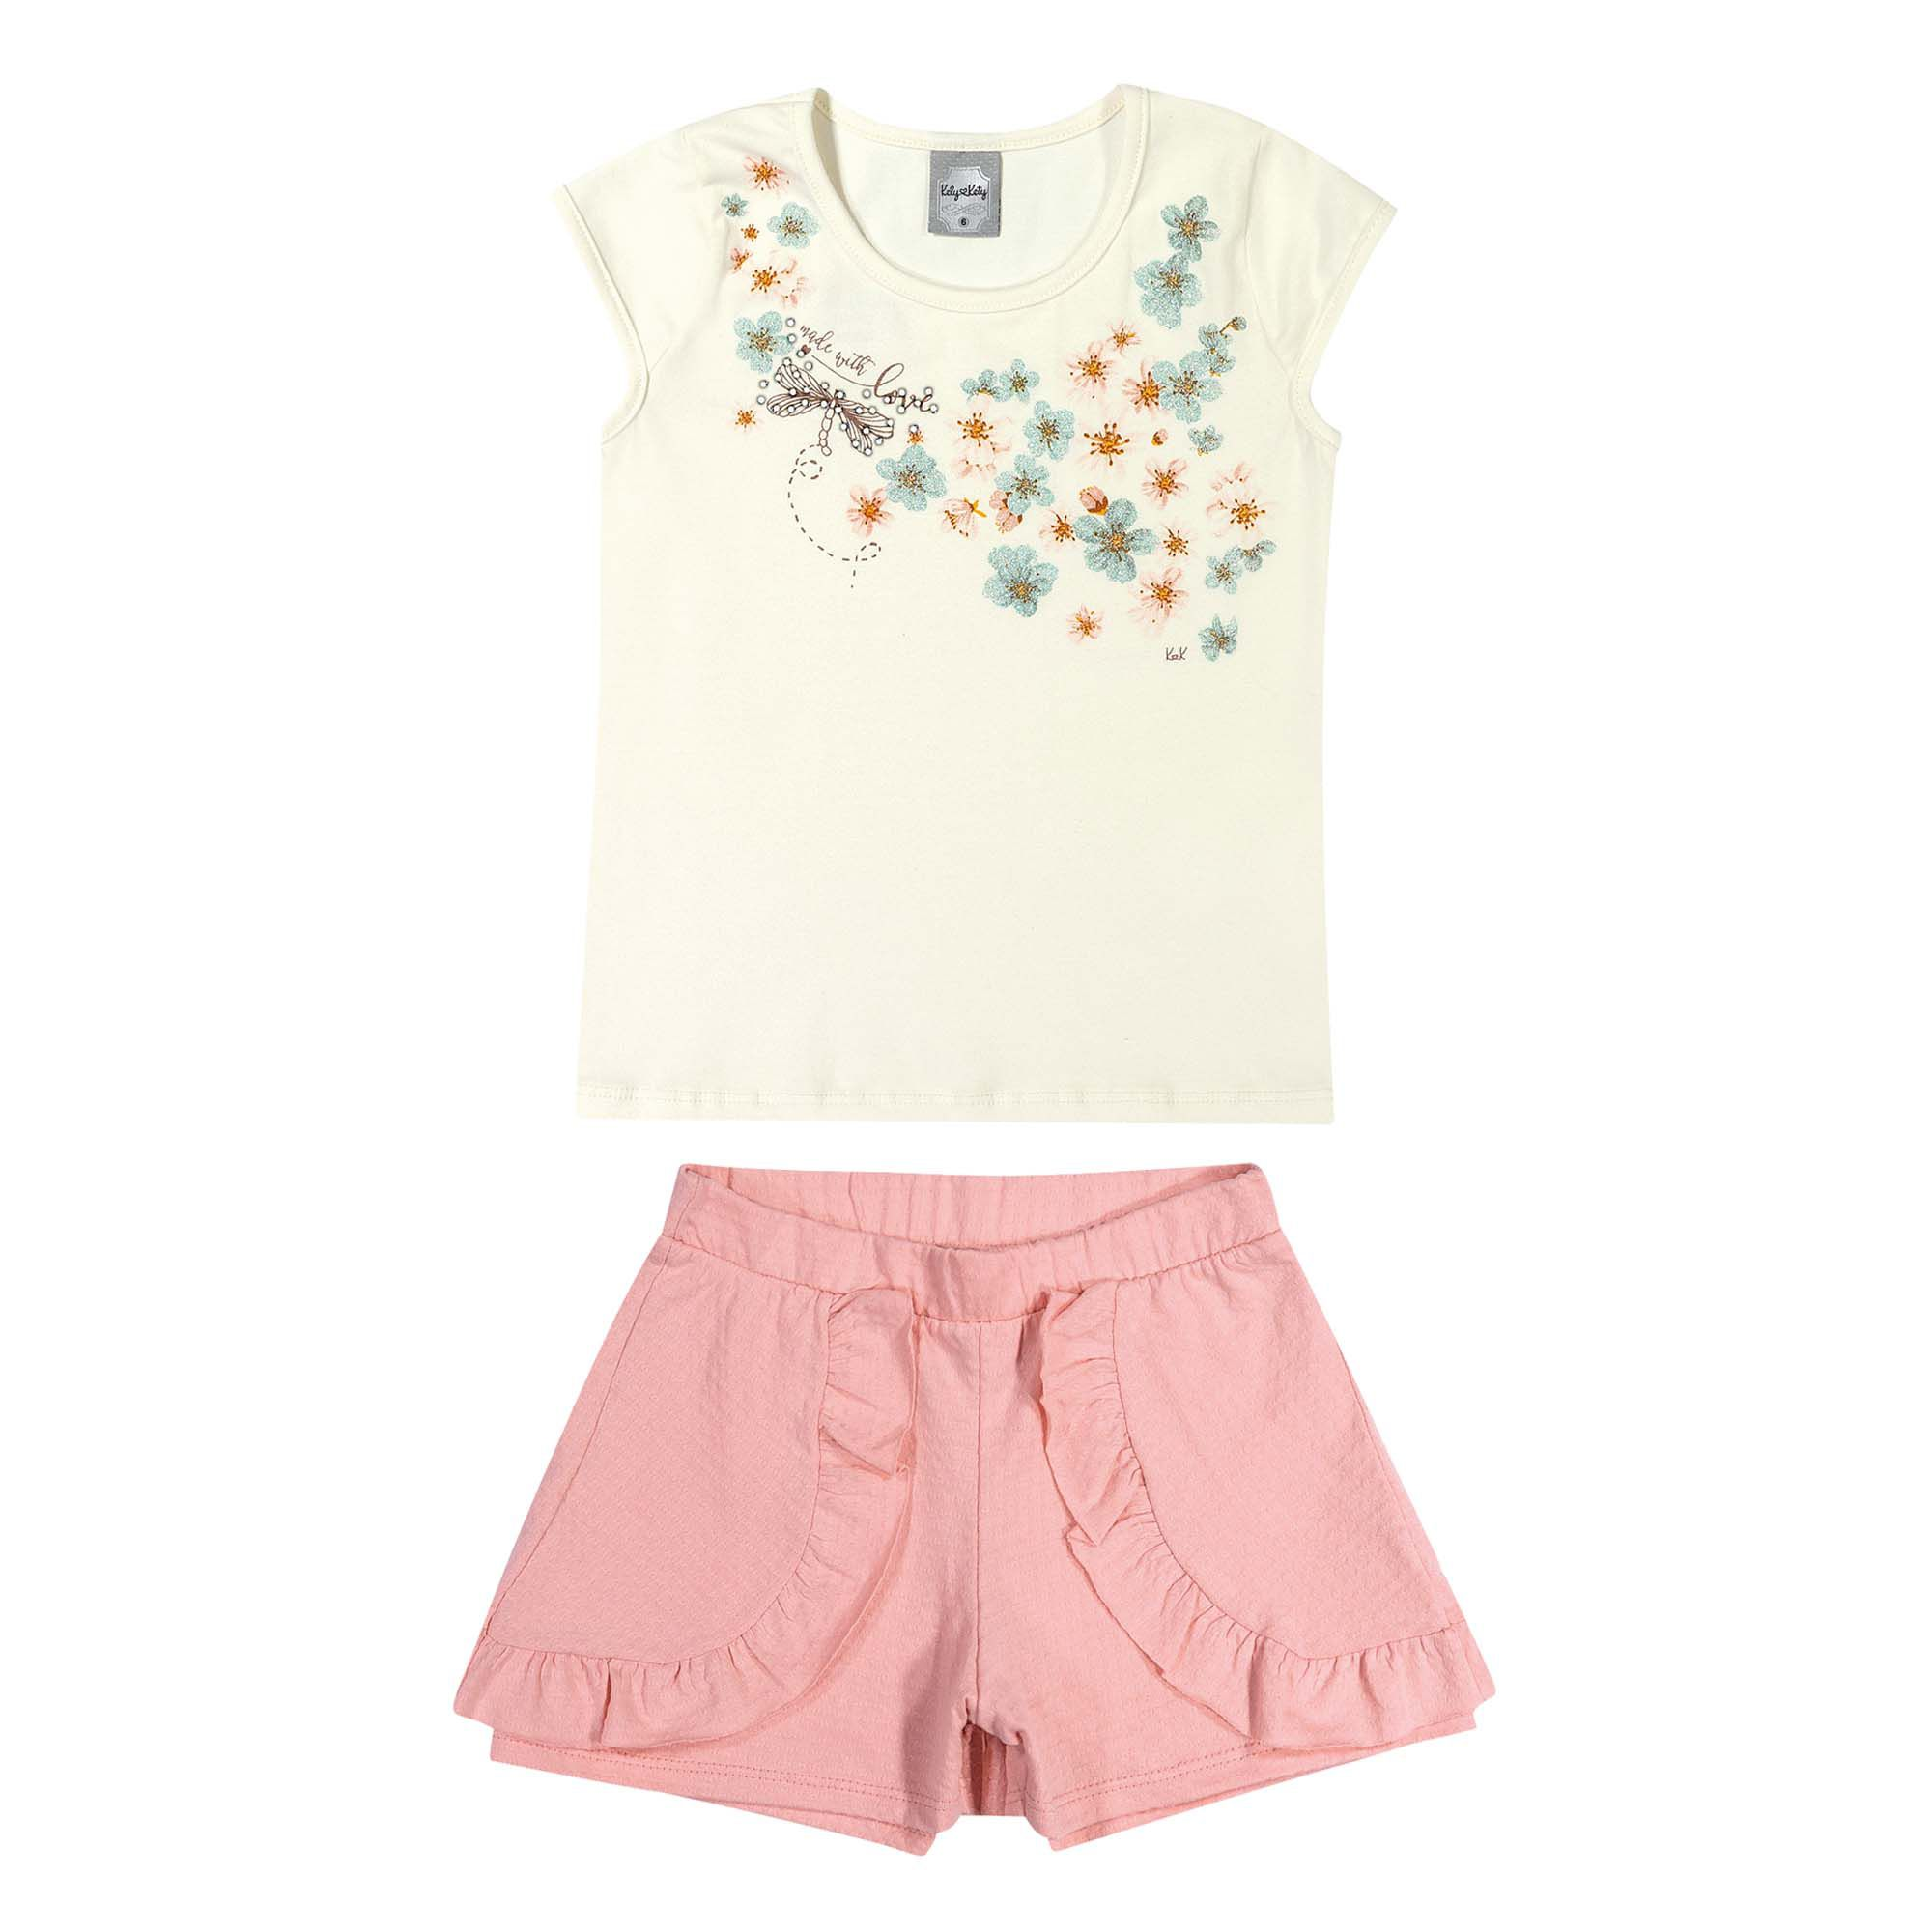 Conjunto Romitex Kely Kety Flores - 4 ao 10